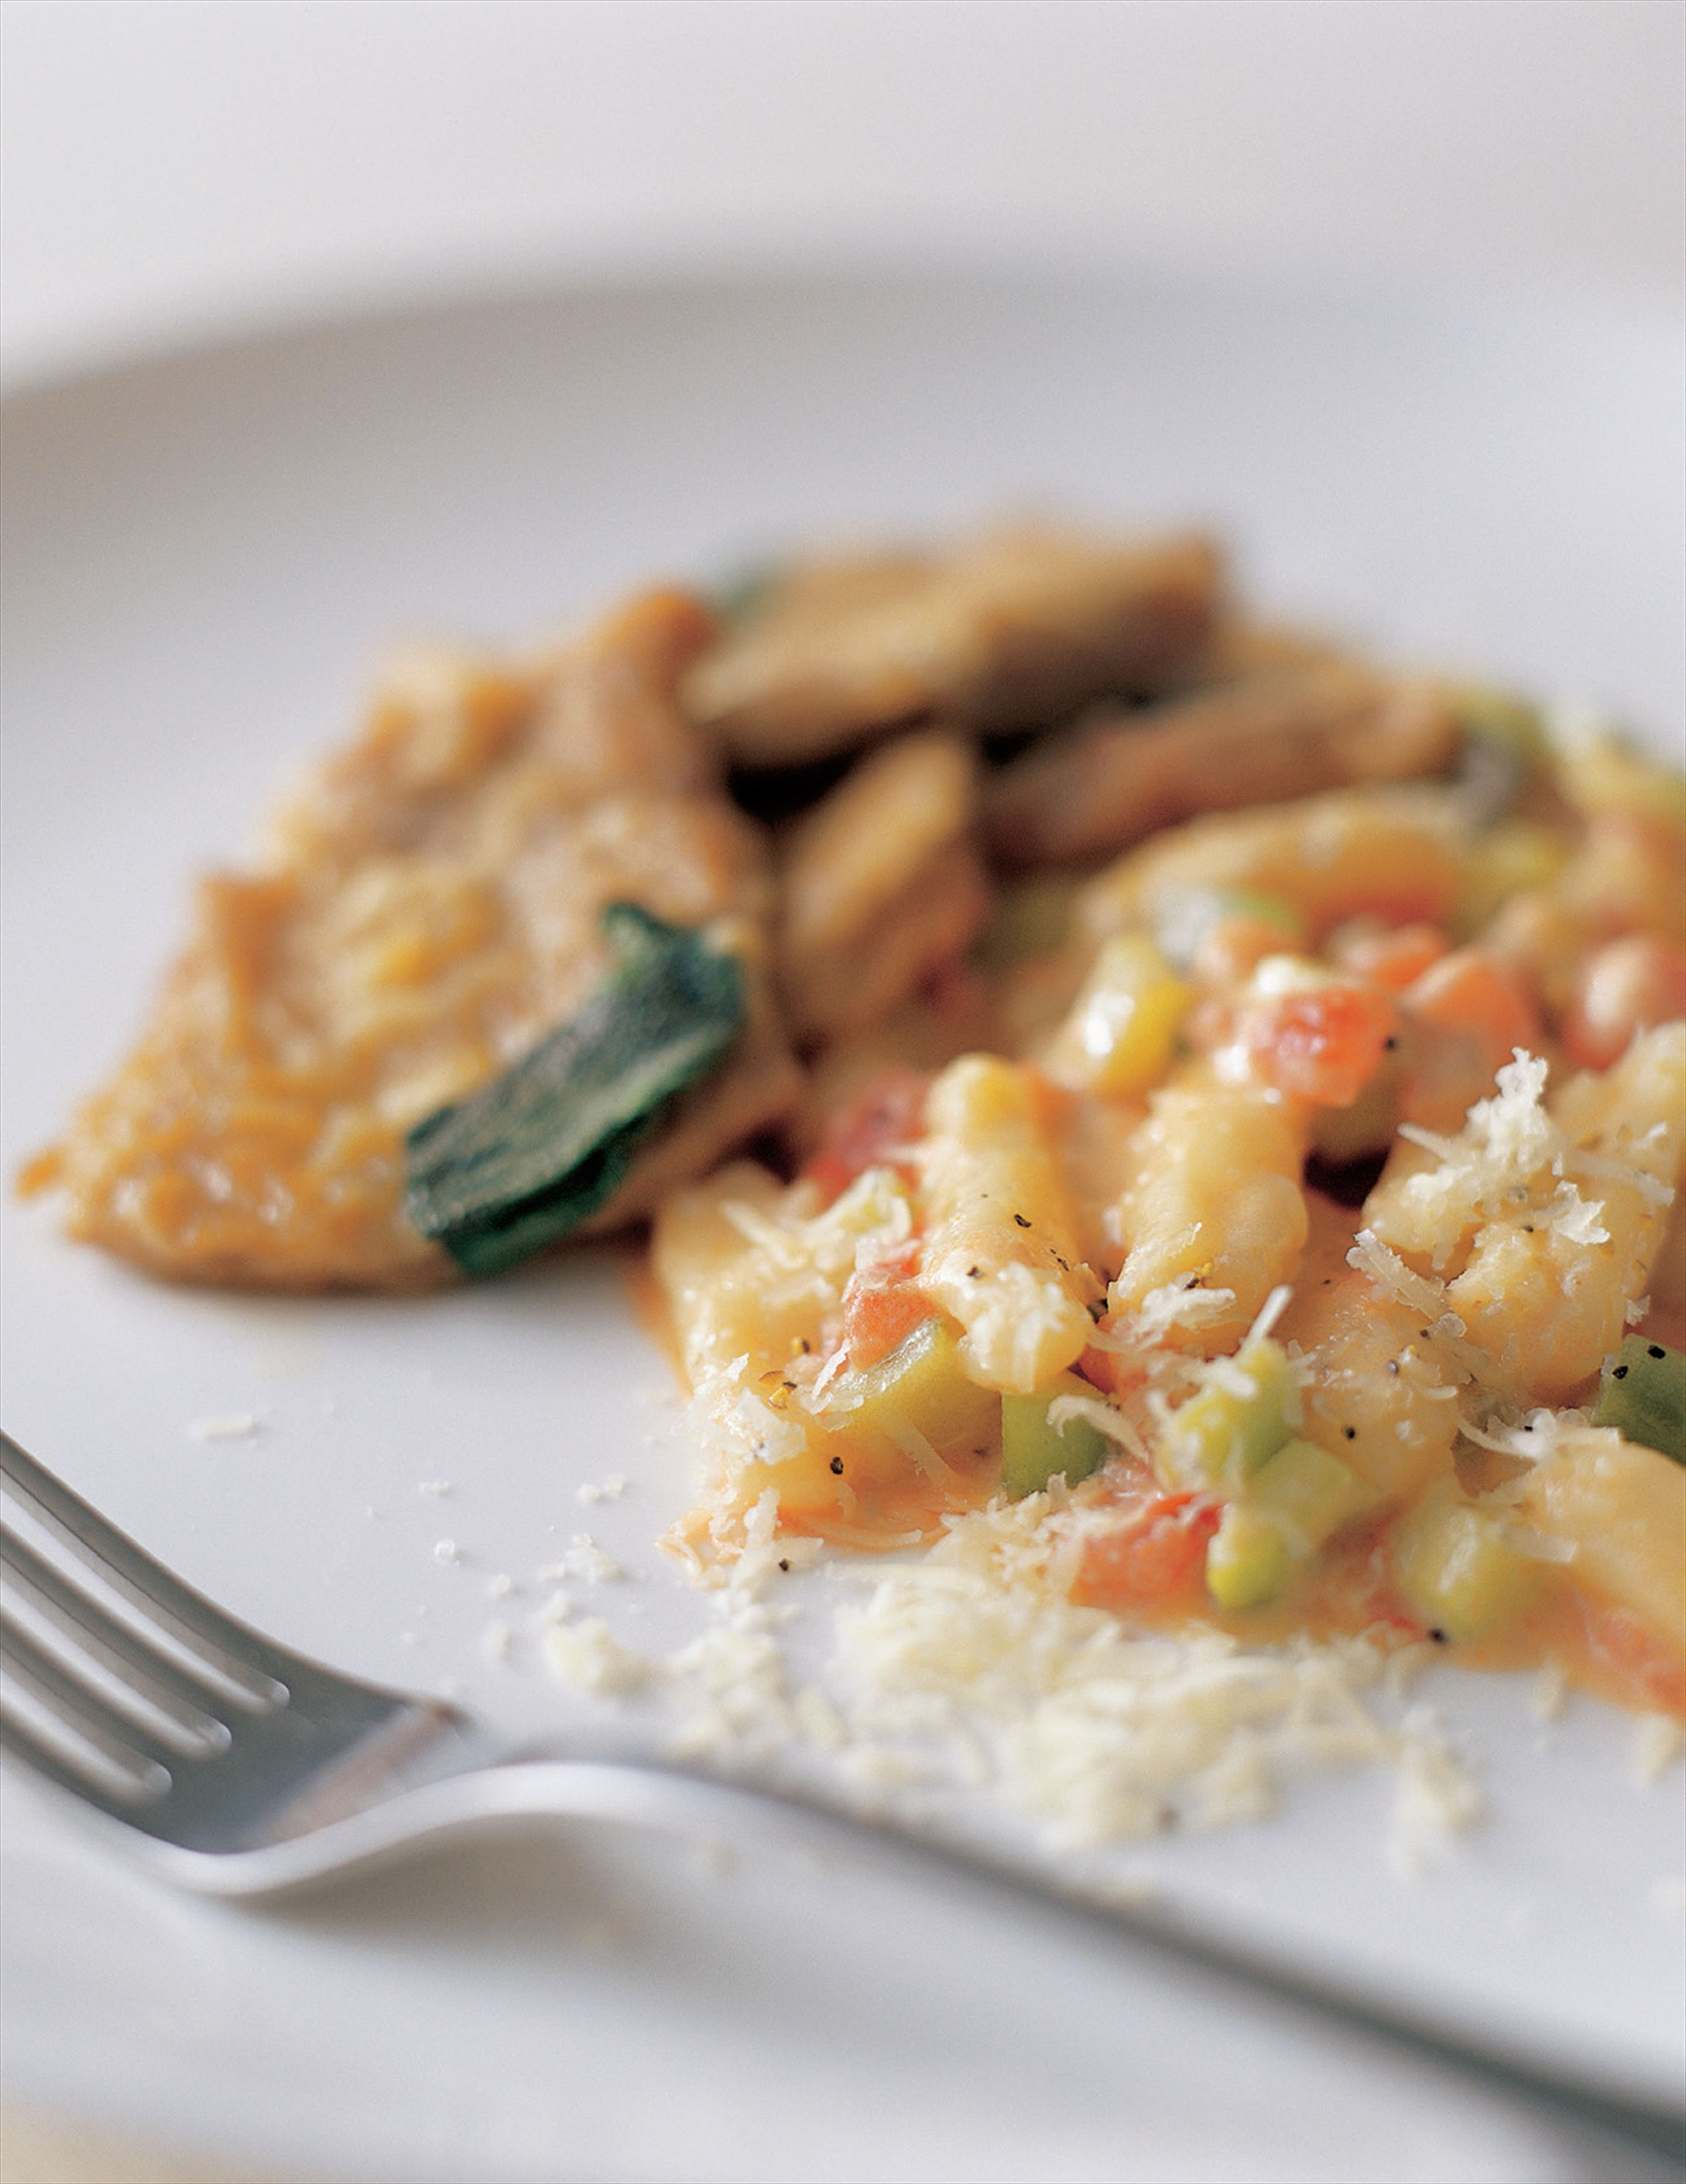 Cavatelli with cucumber sauce and veal scaloppine